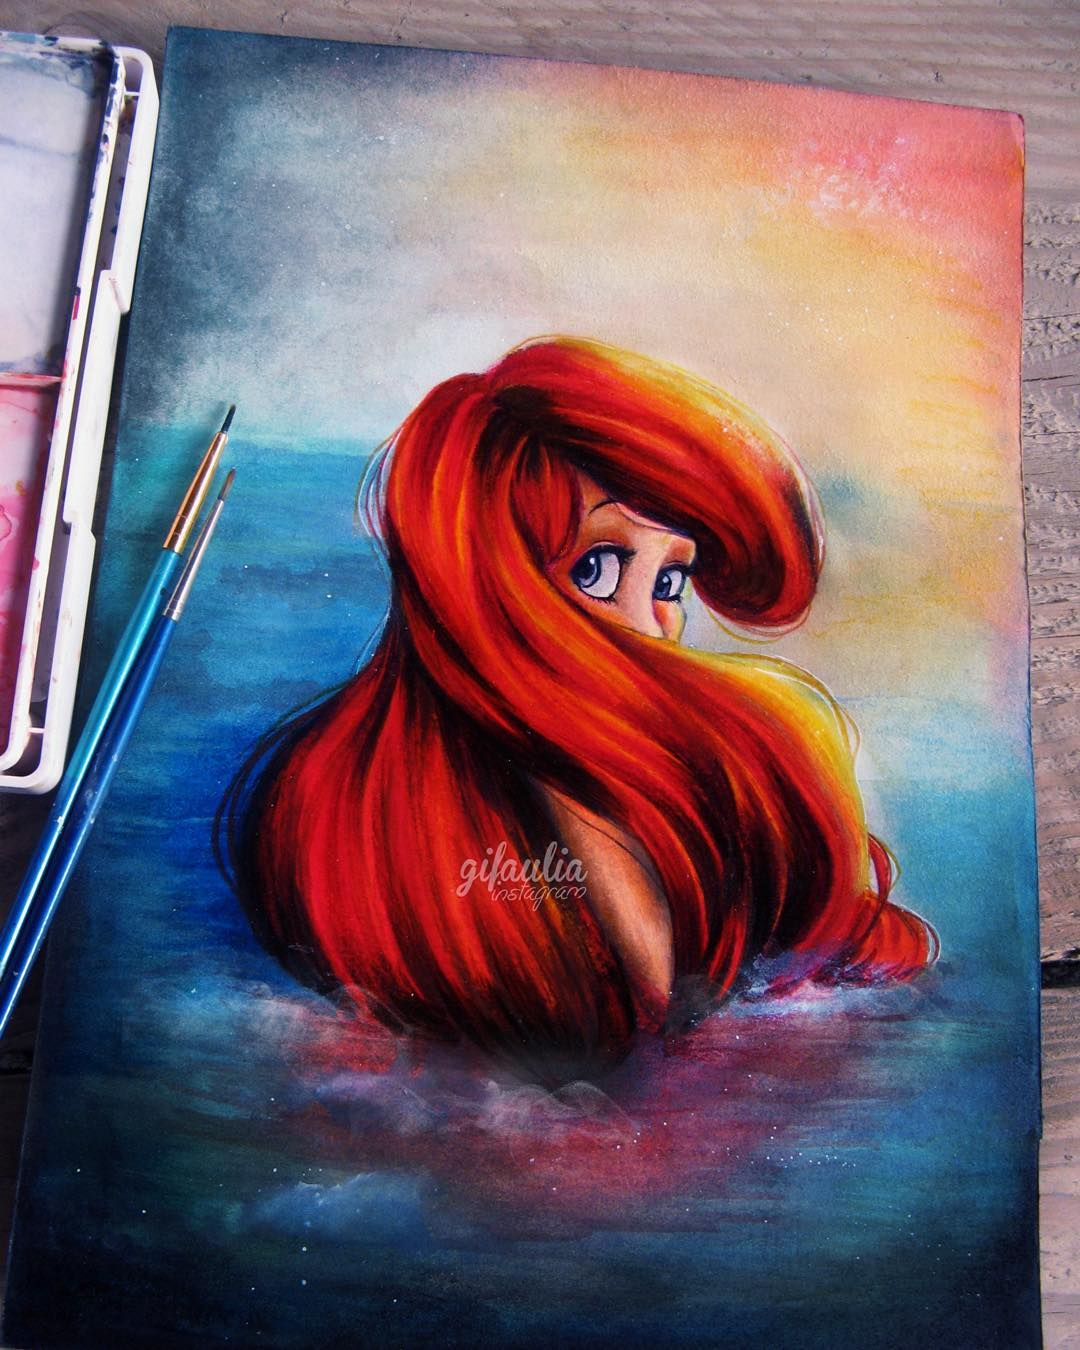 Gina Fajri Aulia On Instagram You Don T Need Water To Feel Like You Re Drowning Watercolor Acrylics And Prismacol Disney Paintings Disney Art Disney Drawings